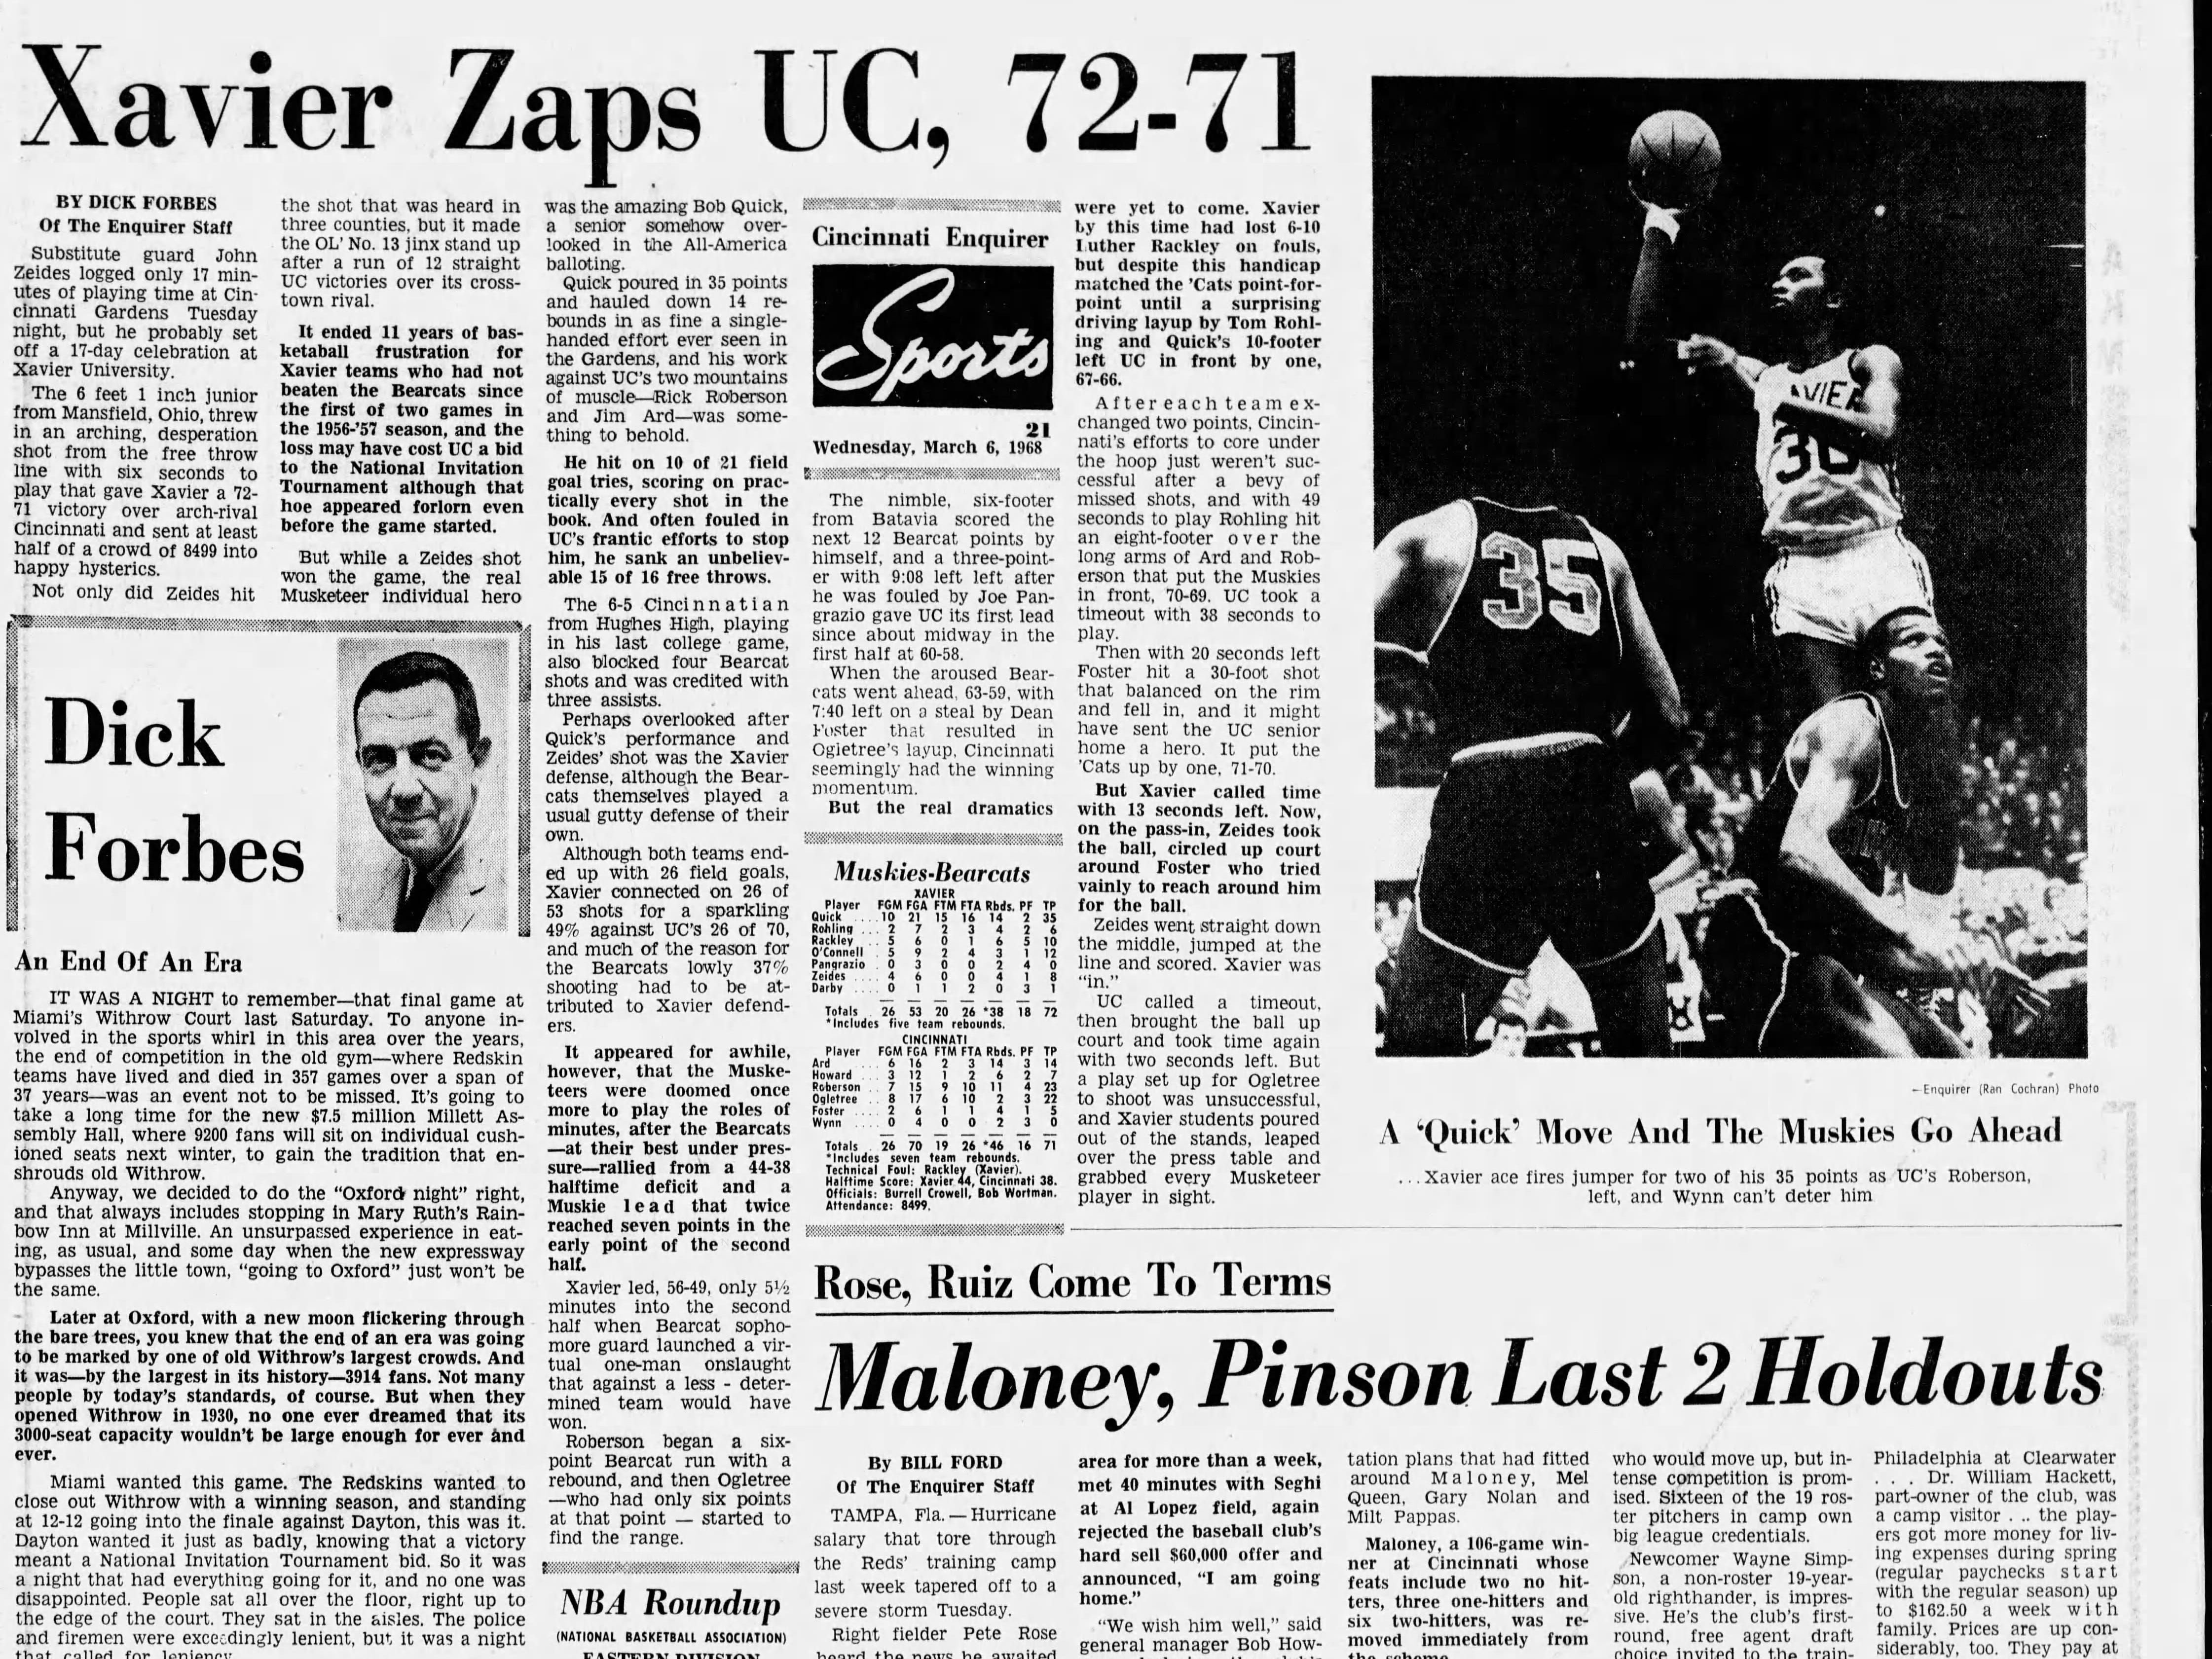 Xavier snapped a 12-game losing streak, beating UC 72-71 in 1968.